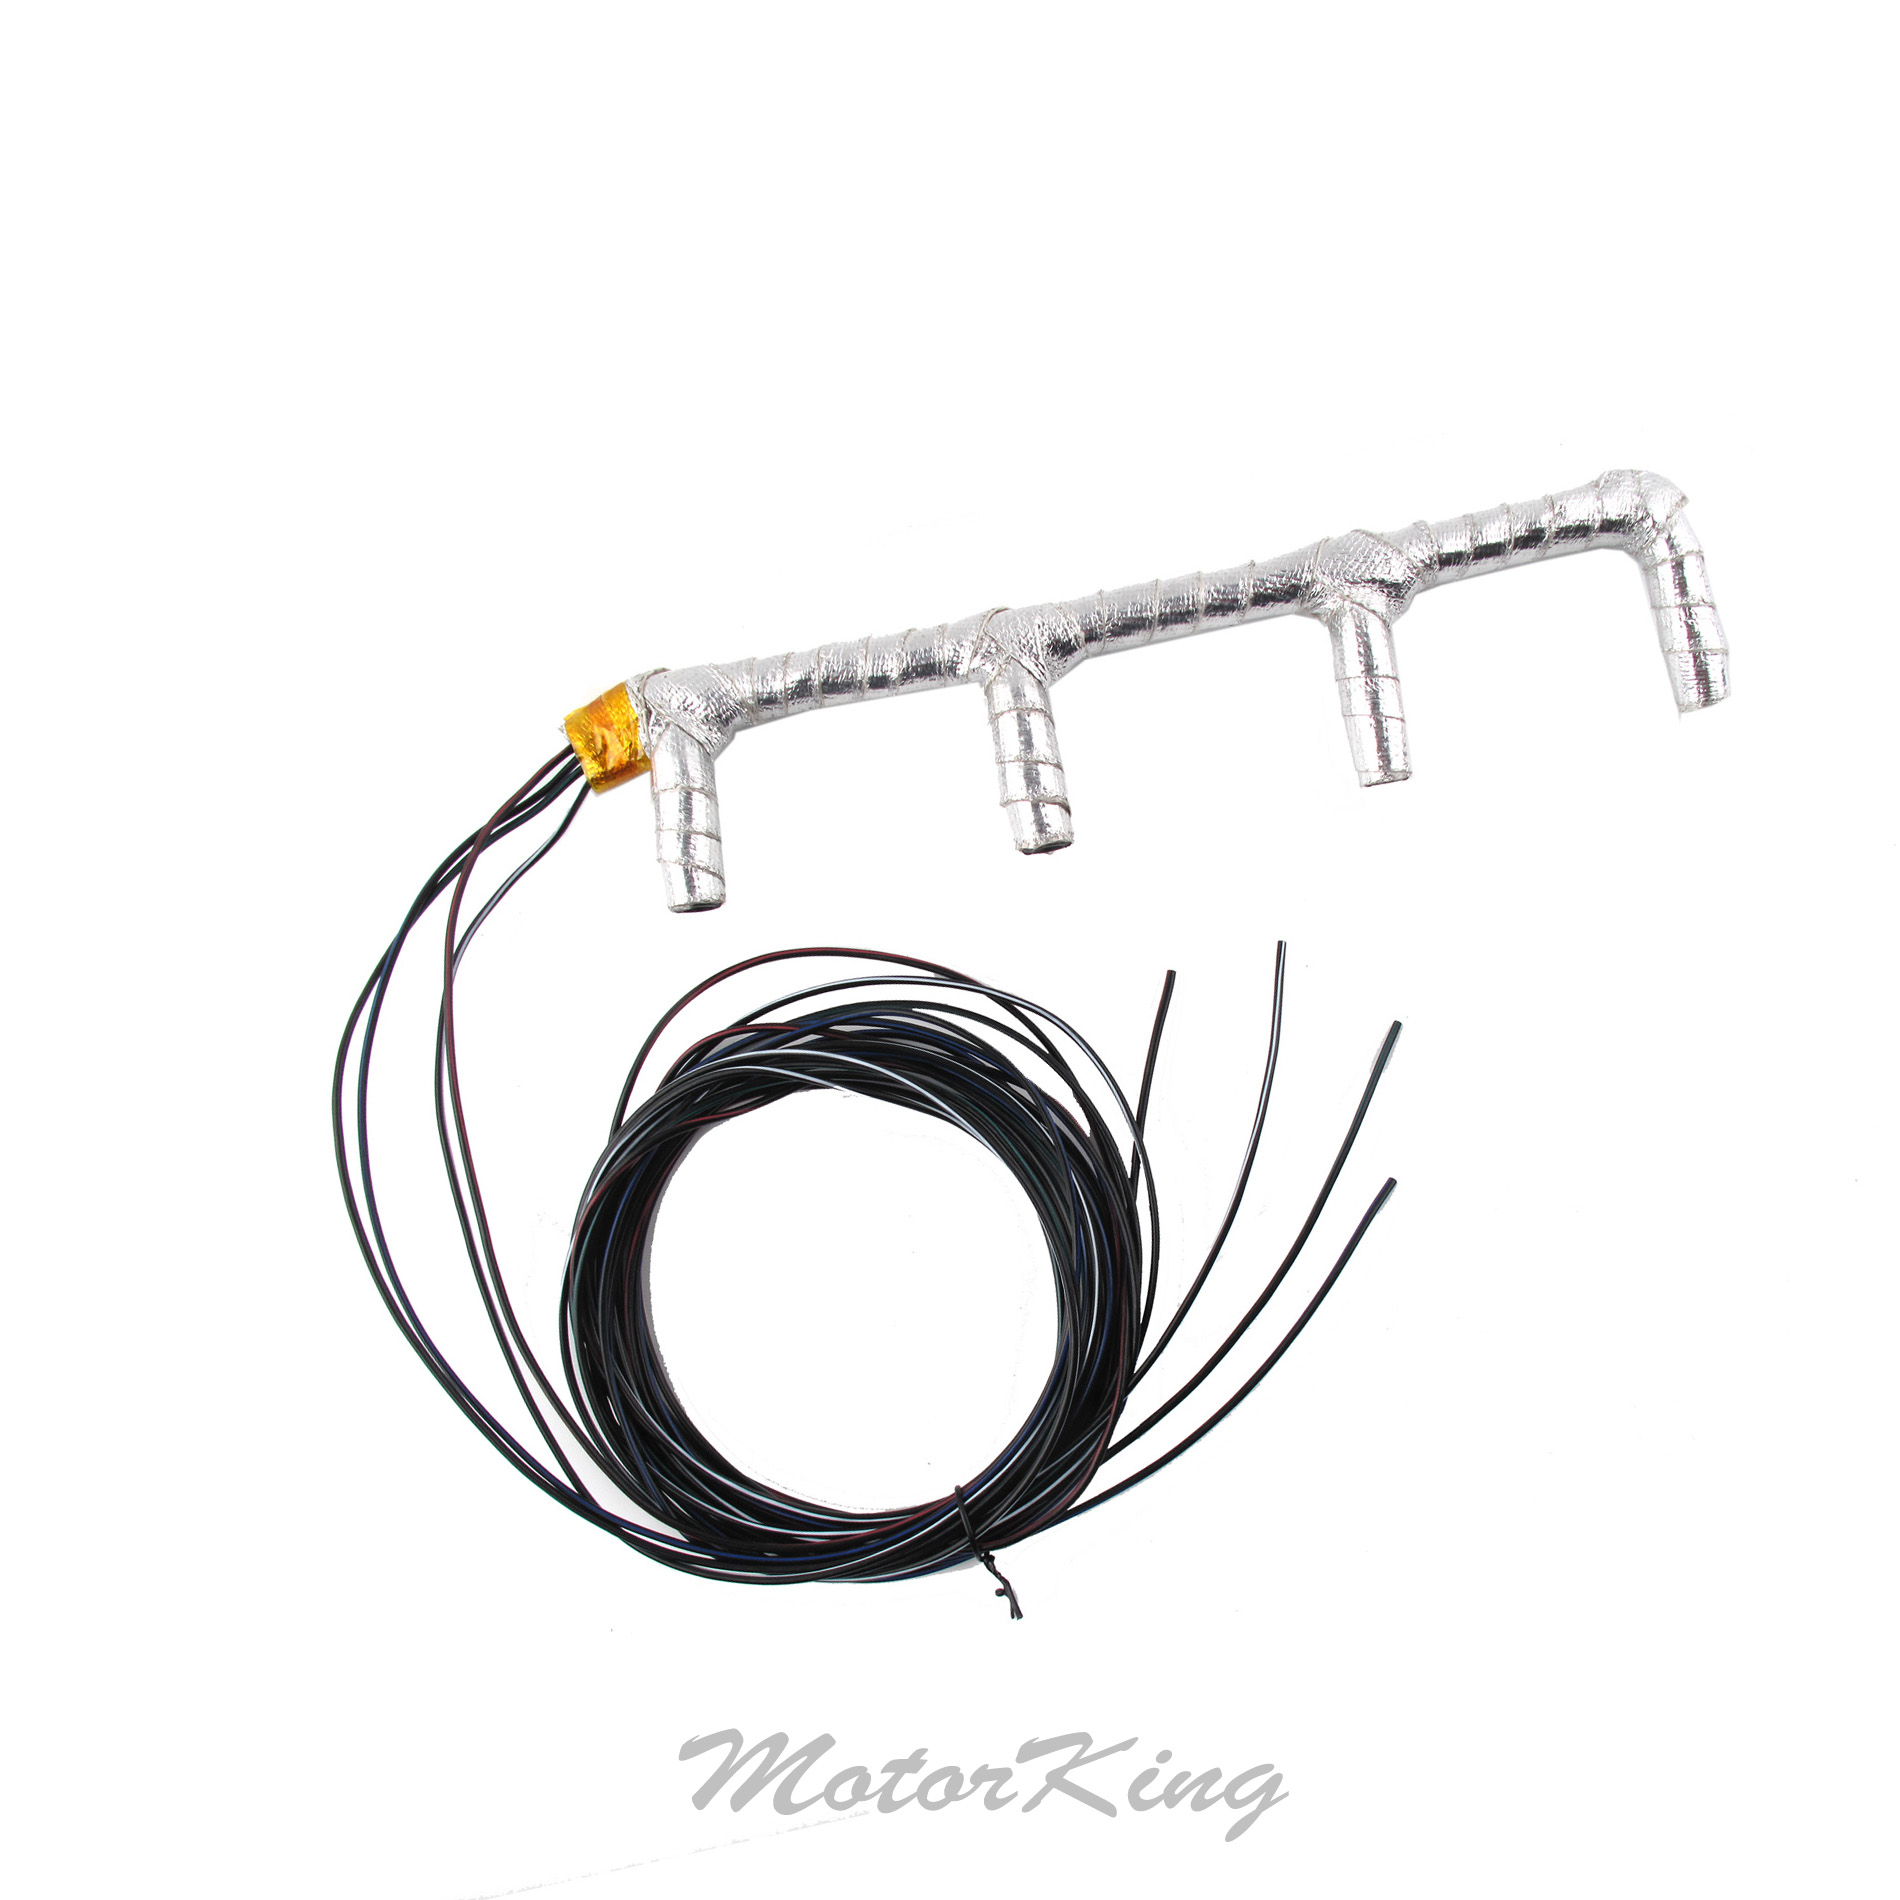 hight resolution of for 04 06 vw golf 1 9l diesel glow plug wiring harness w thermo heat 2006 jetta glow plug wiring harness